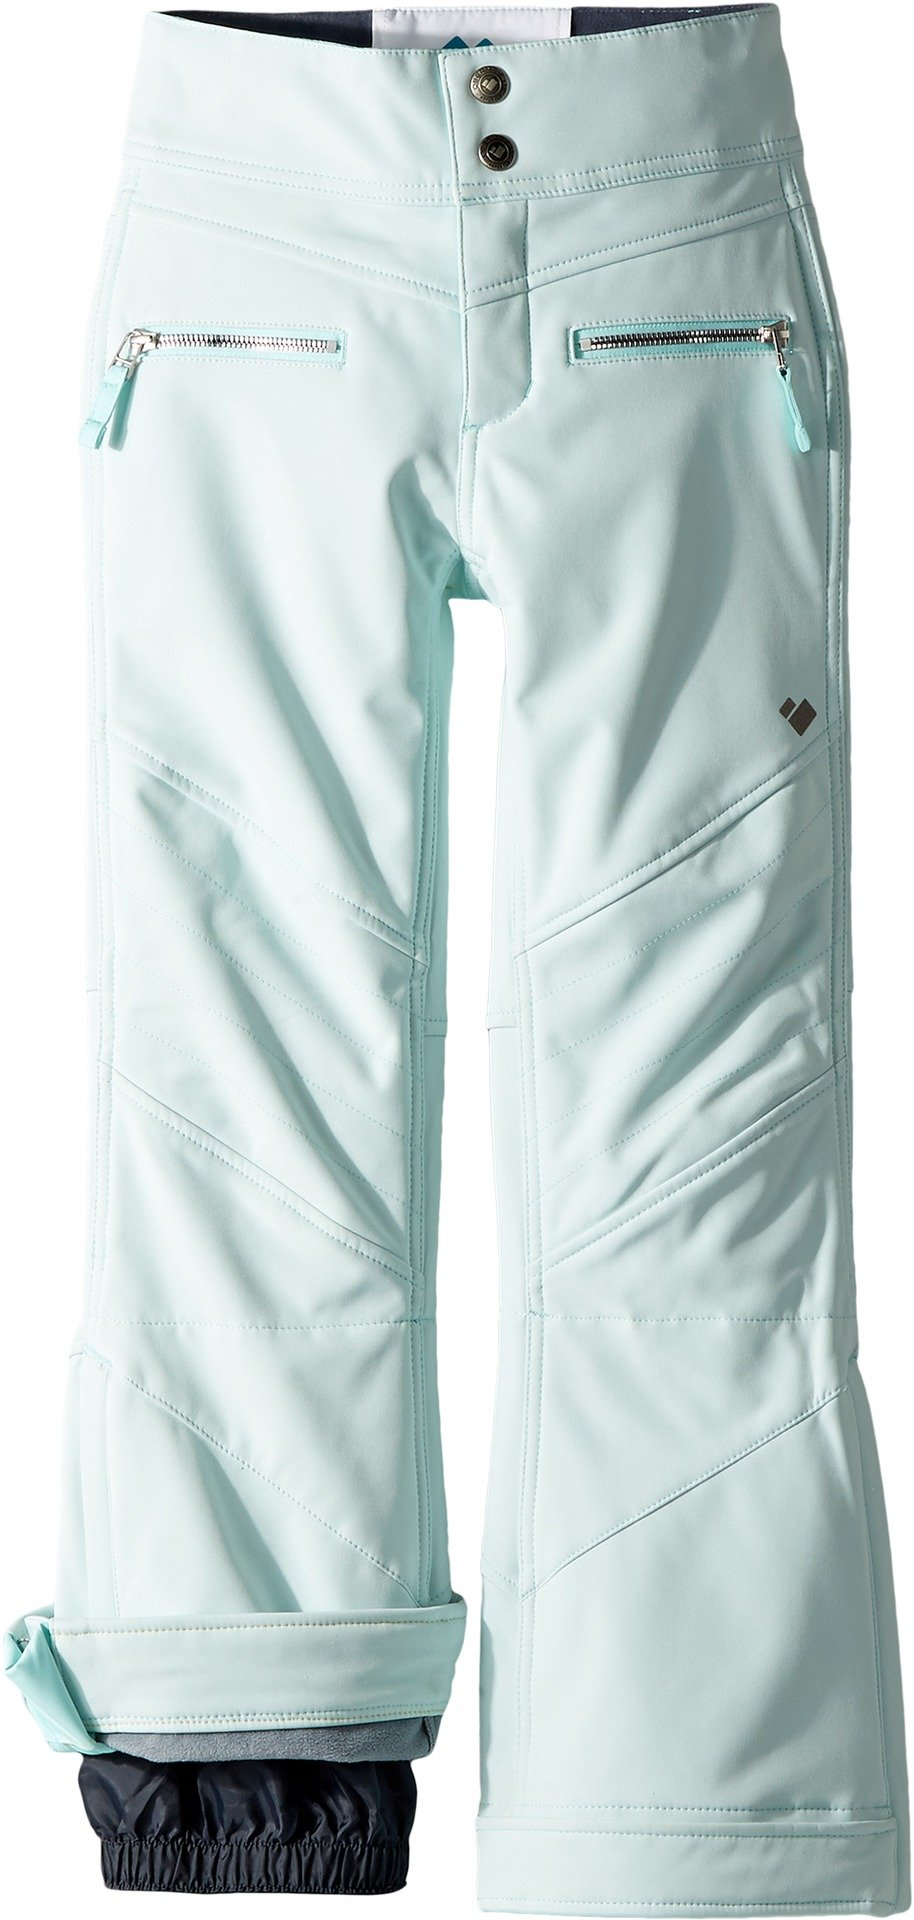 Obermeyer Kids Girl's Jolie Softshell Pants (Little Kids/Big Kids) Seaglass X-Large by Obermeyer Kids